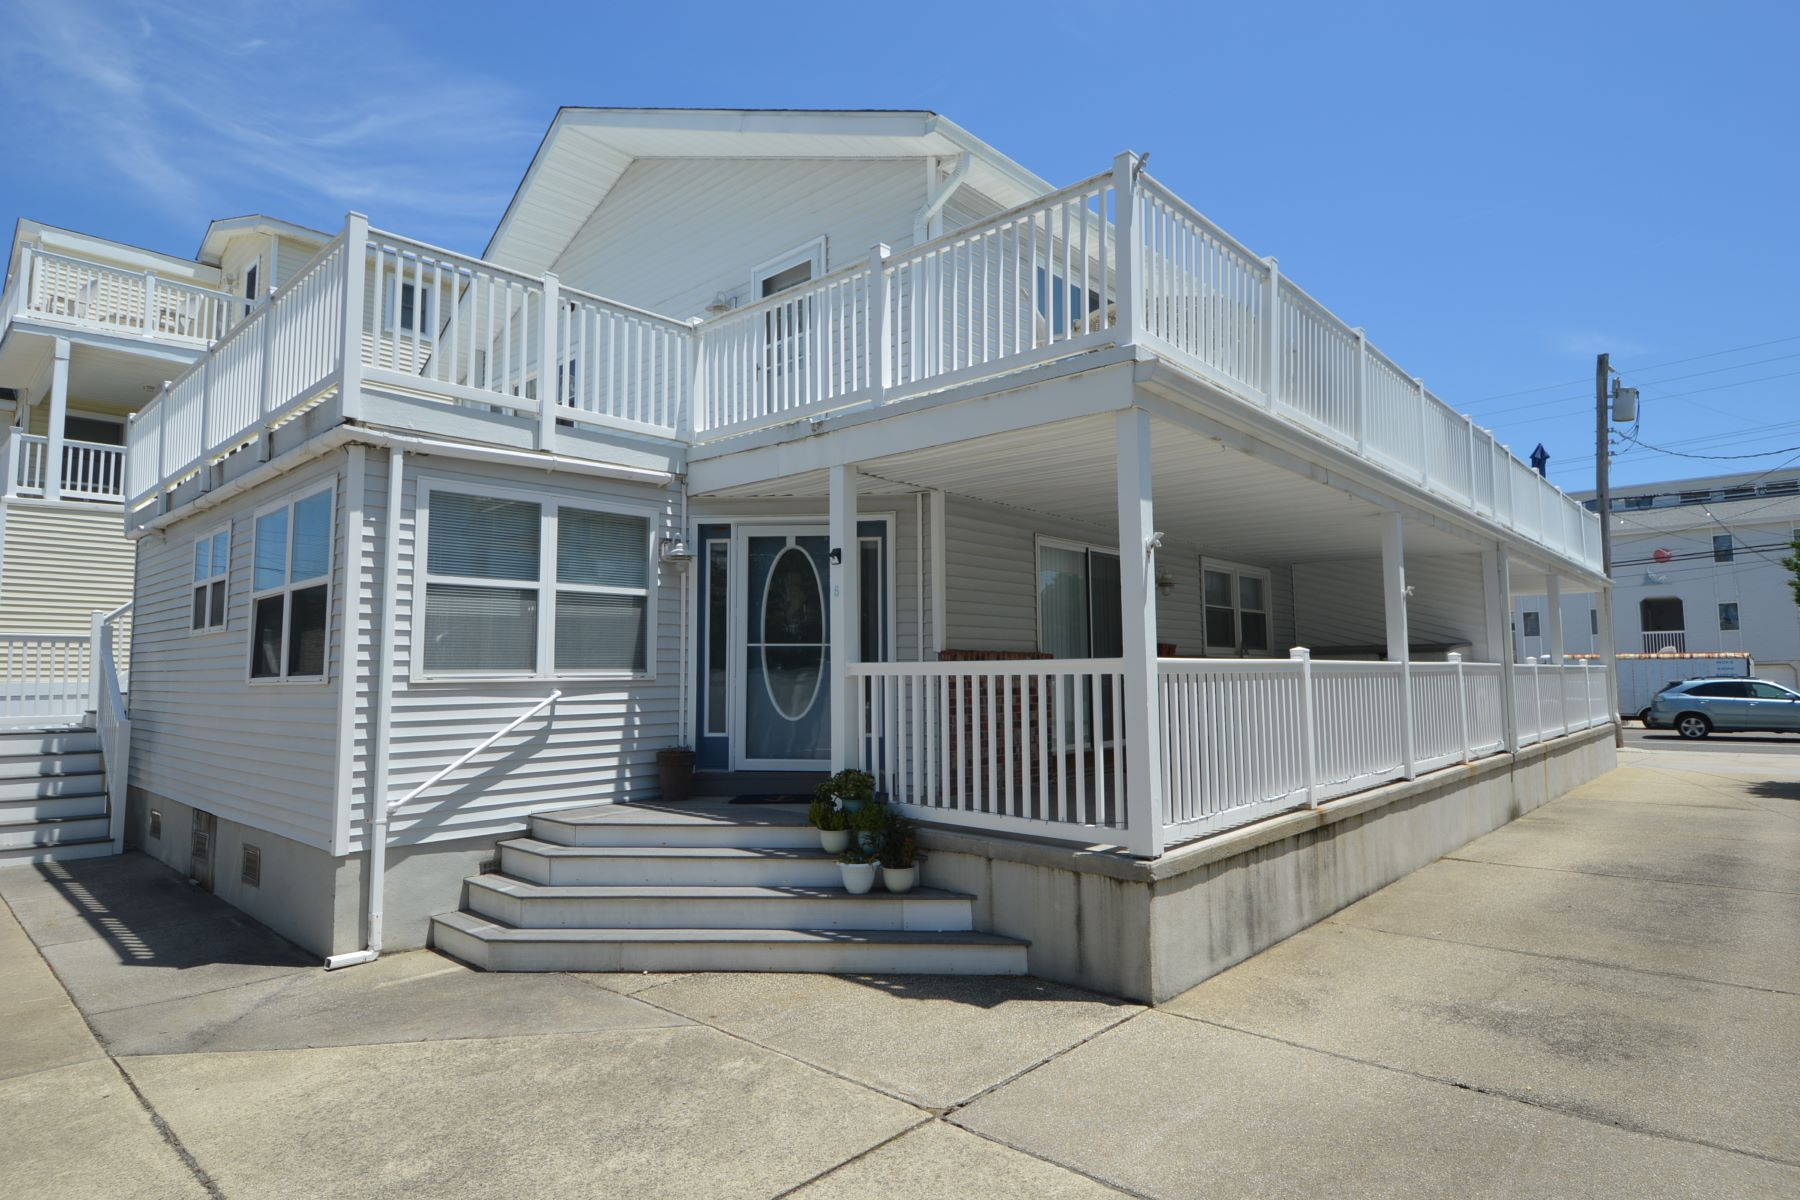 Condominium for Sale at Essential Beach Town Condo 5604 Landis Avenue, Unit B, Sea Isle City, New Jersey 08243 United States